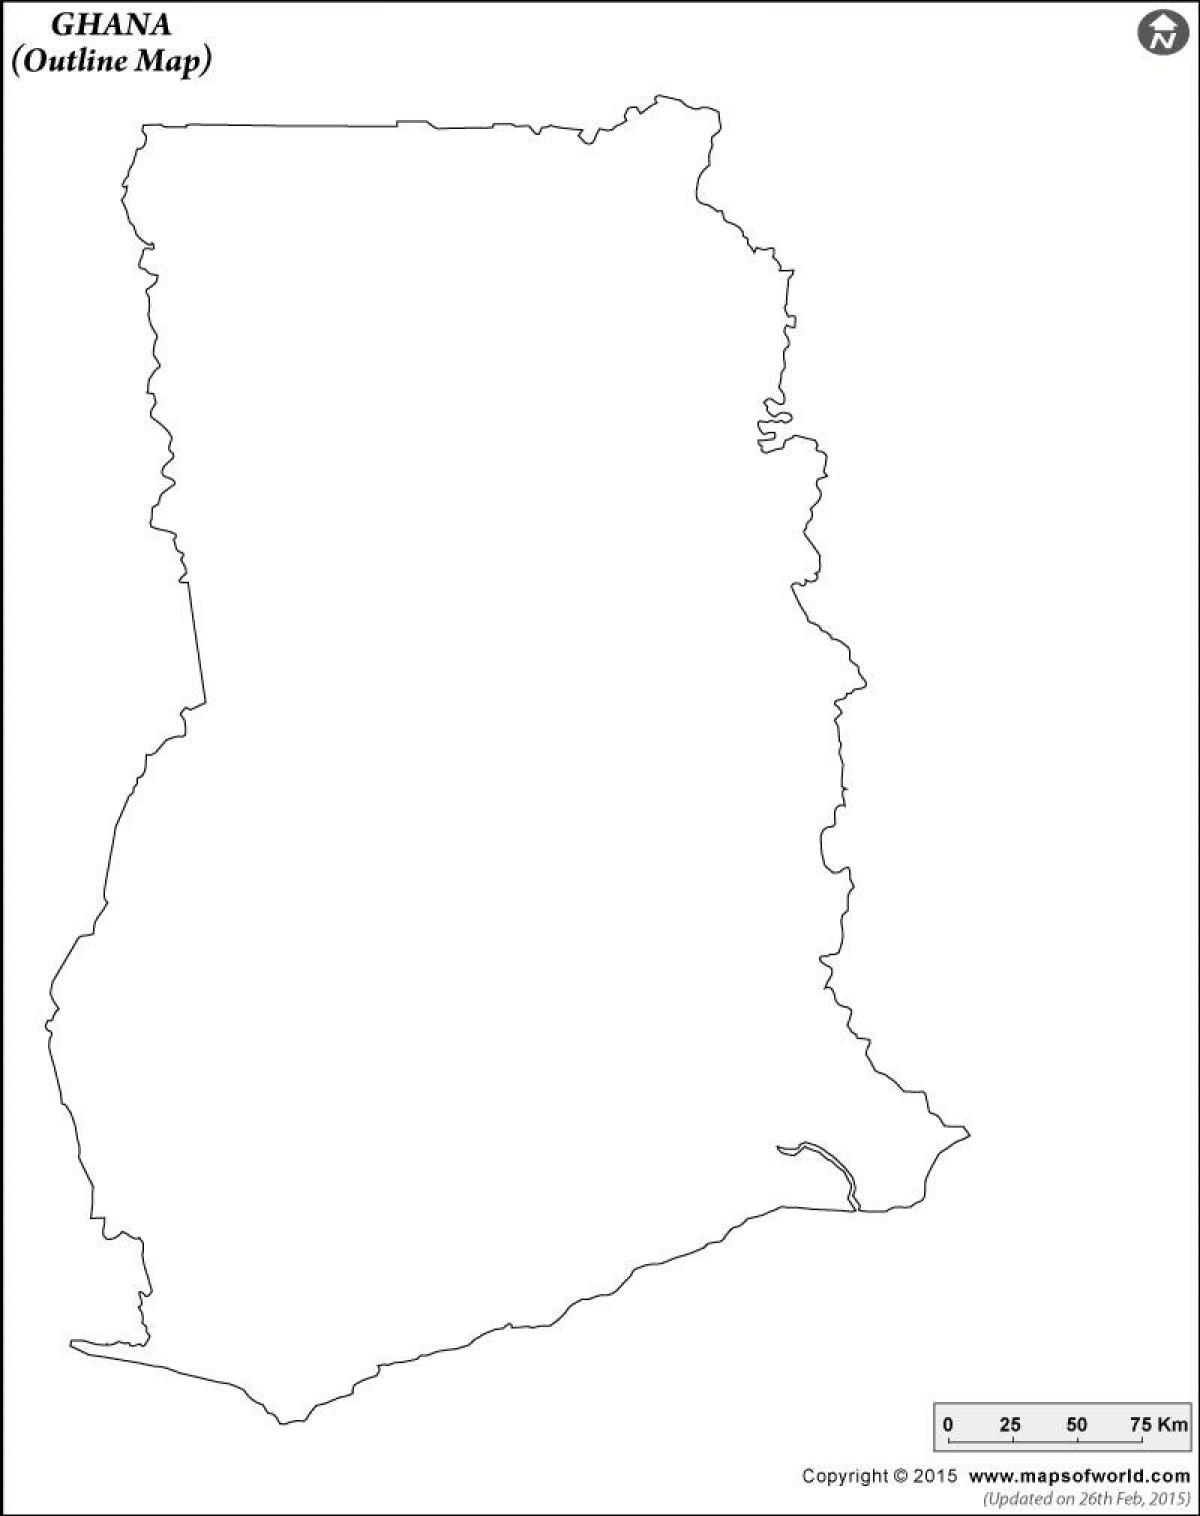 Ghana map outline - Blank map of ghana (Western Africa - Africa) on blank map of western asian countries, blank map of middle west, blank map of central america, blank maps of africa for students, blank map of usa map, blank map of new york city, blank map of south american countries, blank map of togo, political map of africa, blank map of comoros, blank map of western european countries, blank map of the former soviet union, map of western and central africa, blank map of western civilization, blank map of nato, blank map of the arabian peninsula, blank map of gabon, physical map of western africa, blank map of kyrgyzstan, blank map of latvia,